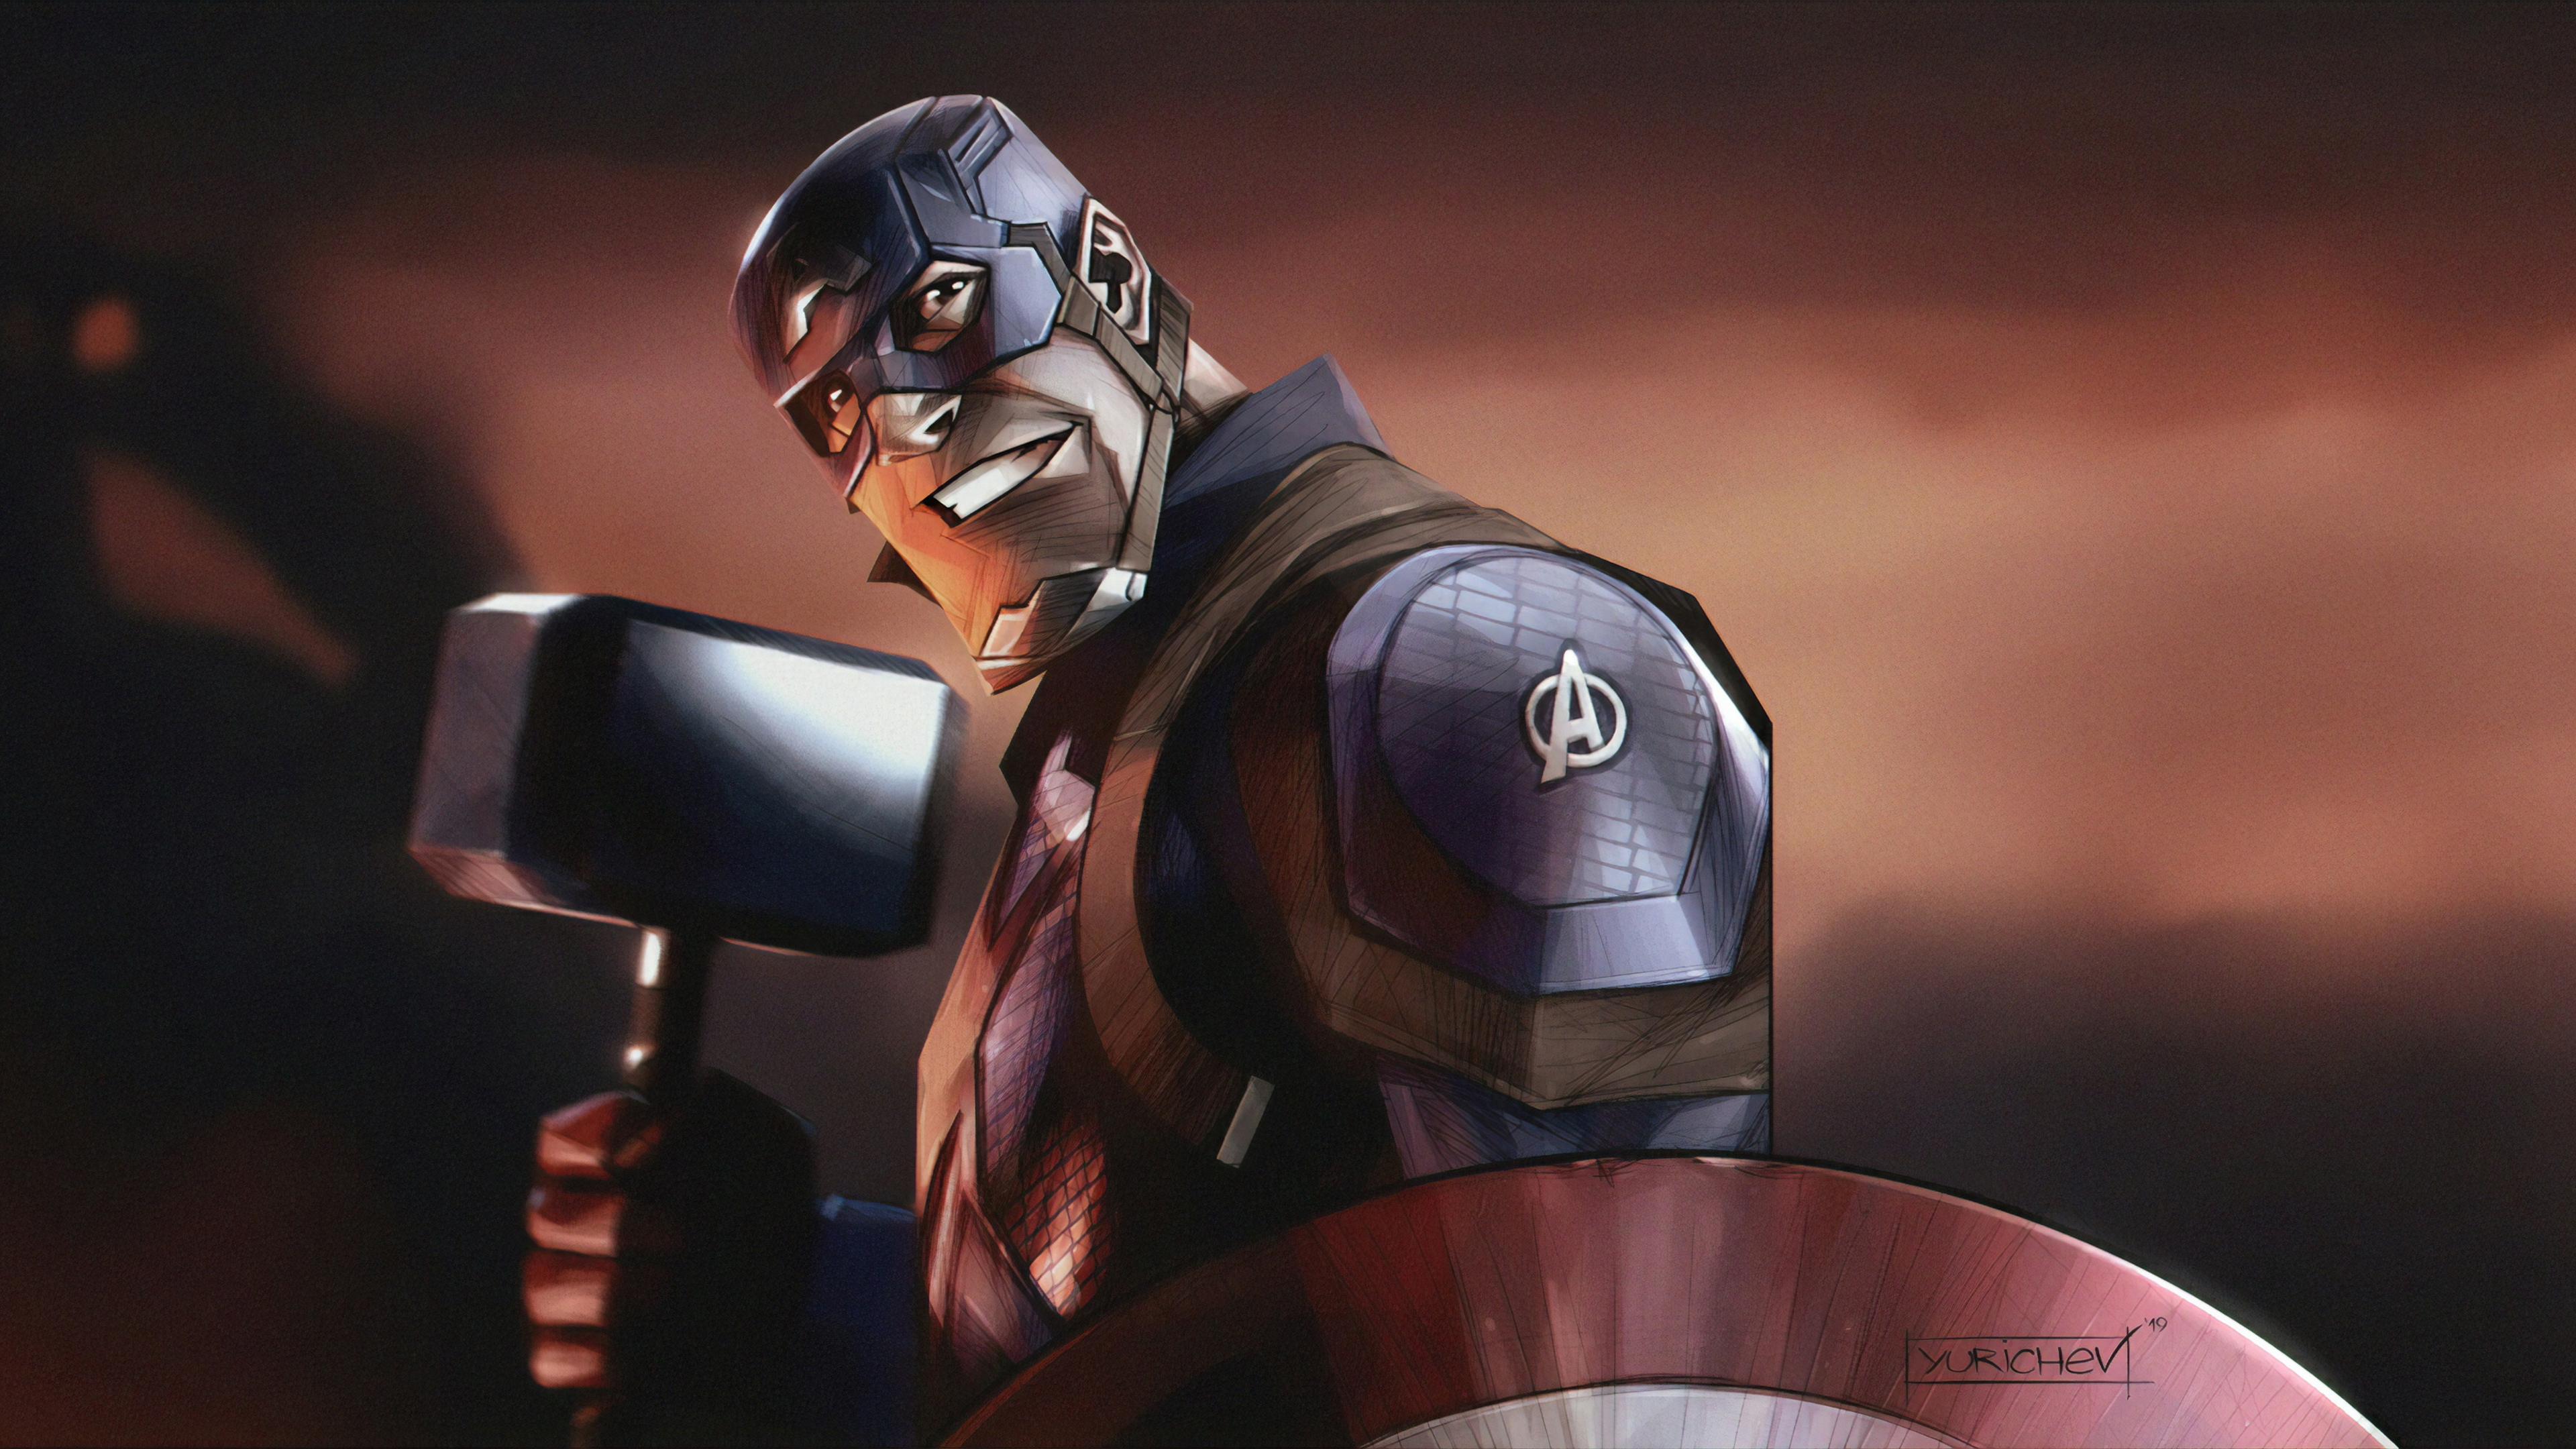 captain america mjolnir hd 1570394252 - Captain America Mjolnir Hd - superheroes wallpapers, hd-wallpapers, digital art wallpapers, captain america wallpapers, artwork wallpapers, artstation wallpapers, 4k-wallpapers